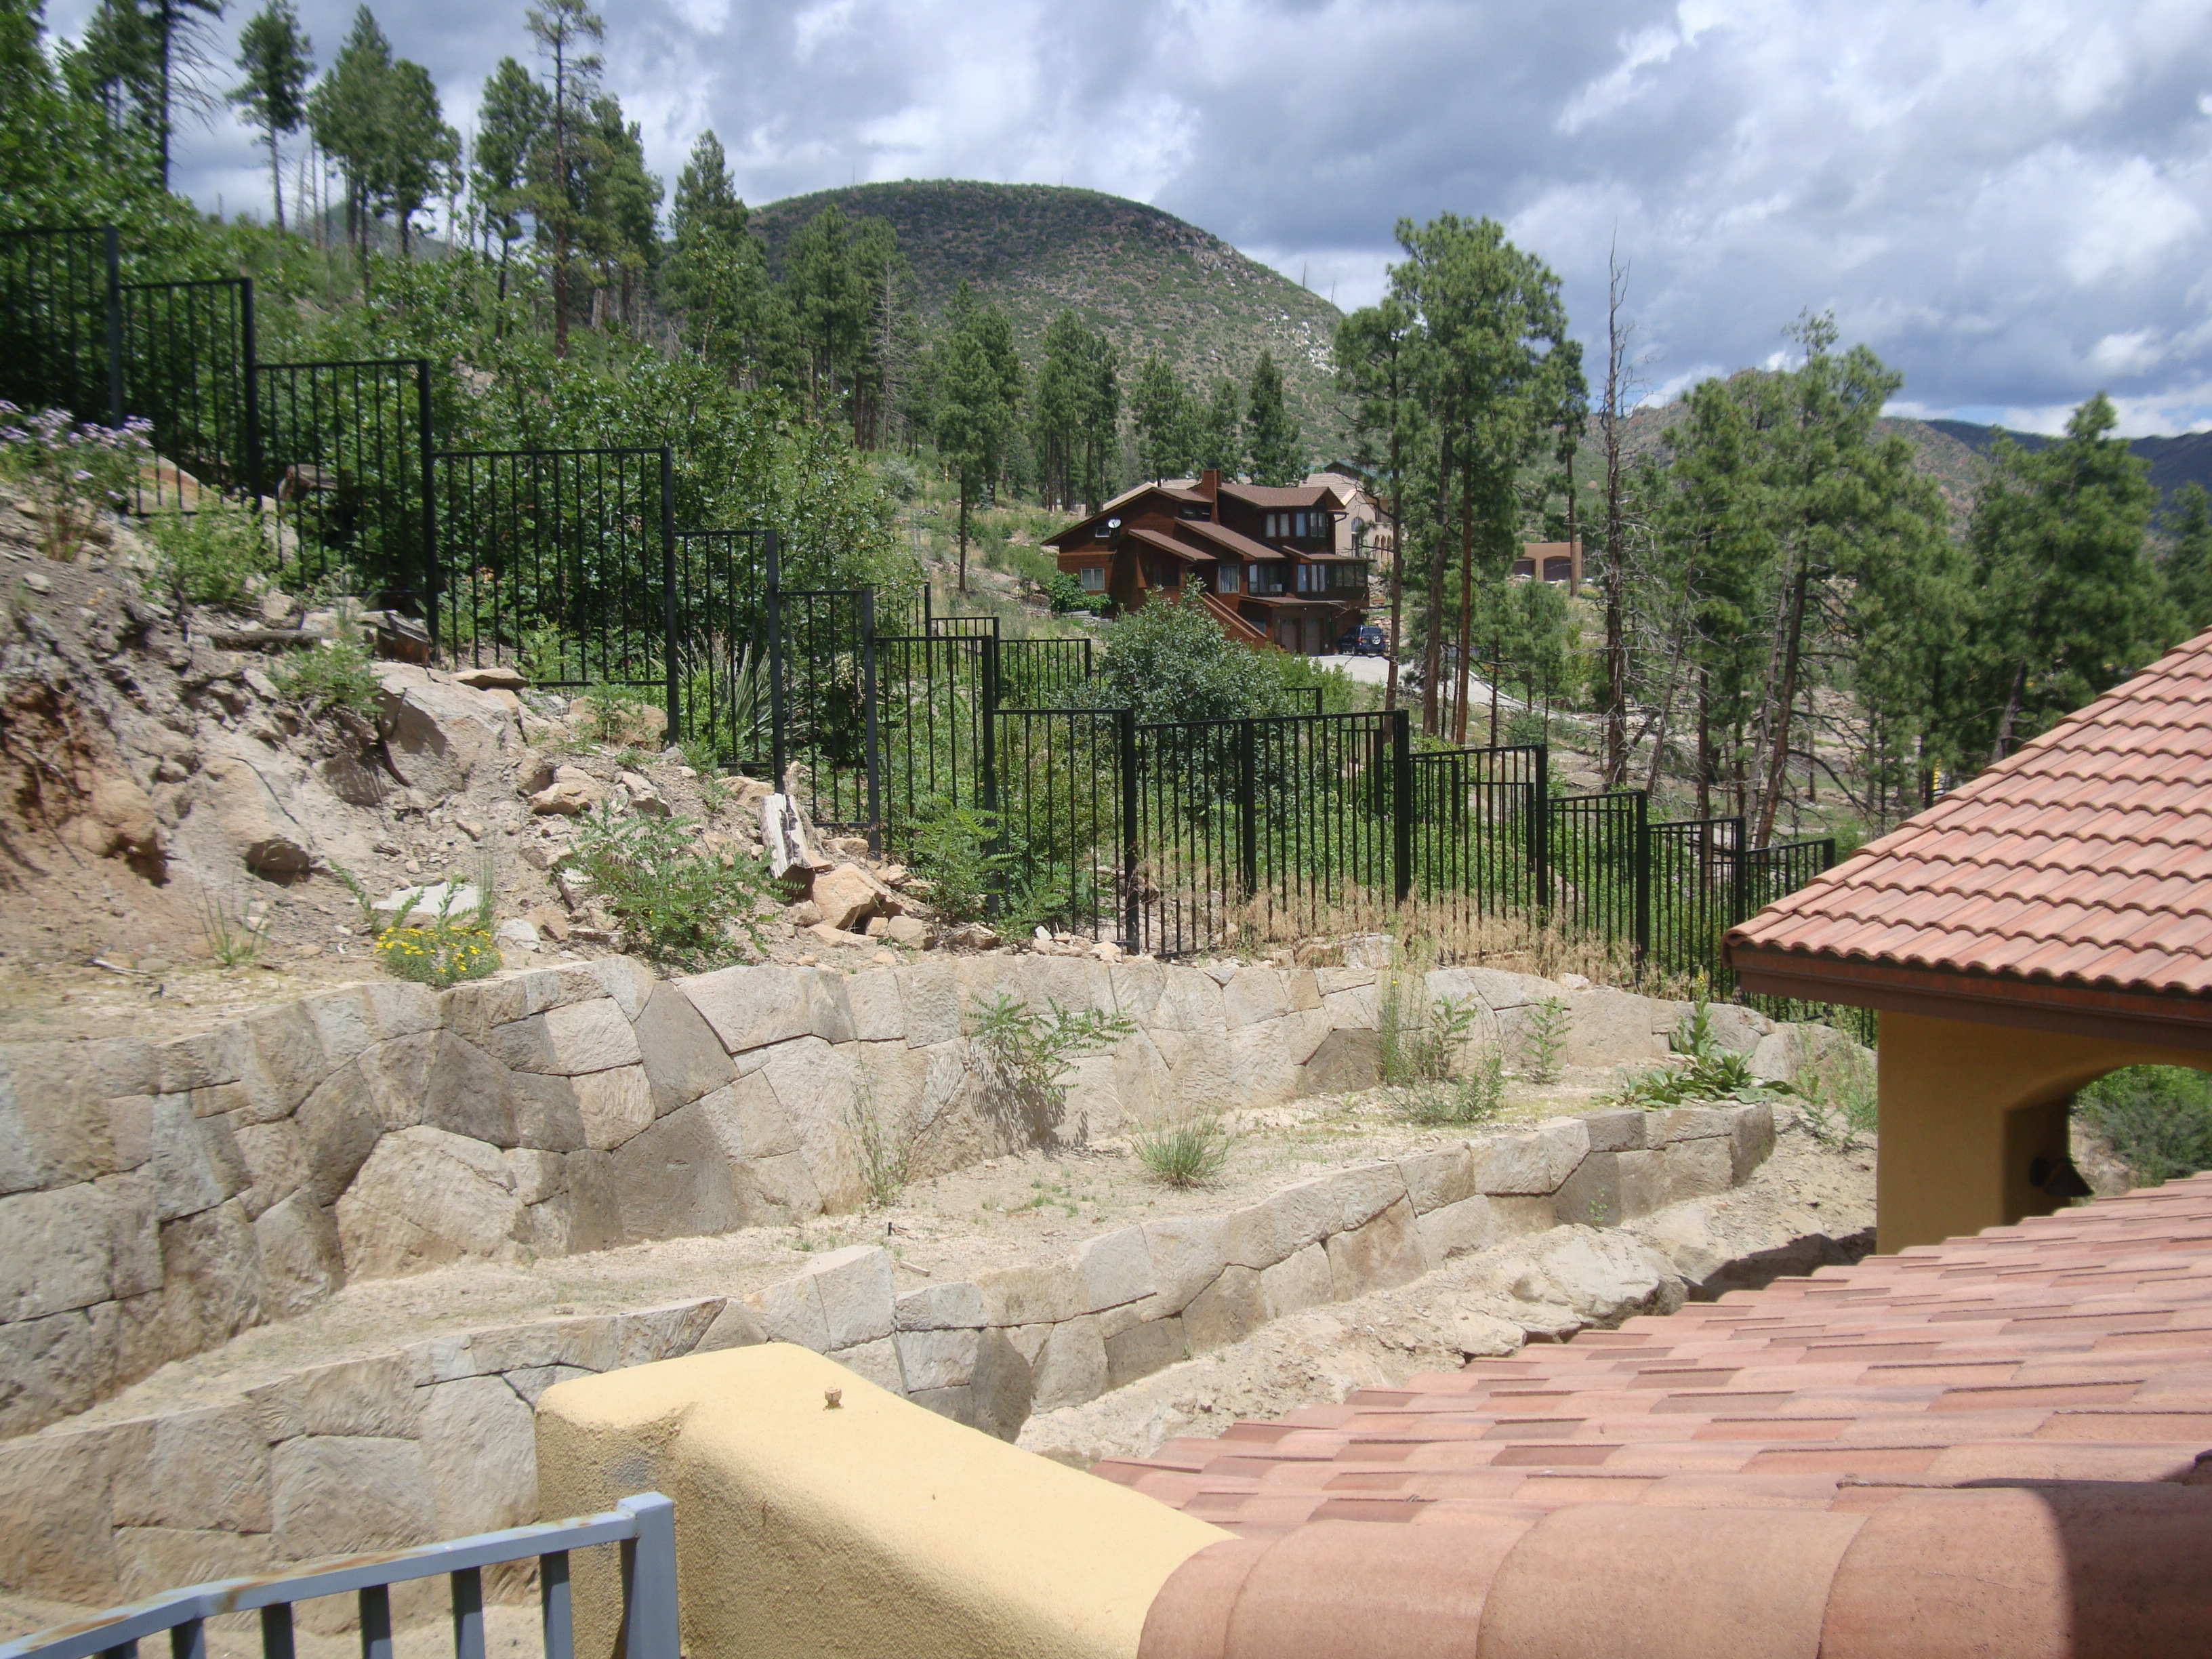 Los Alamos Landscaping More Rock Walls Retaining Walls Wall